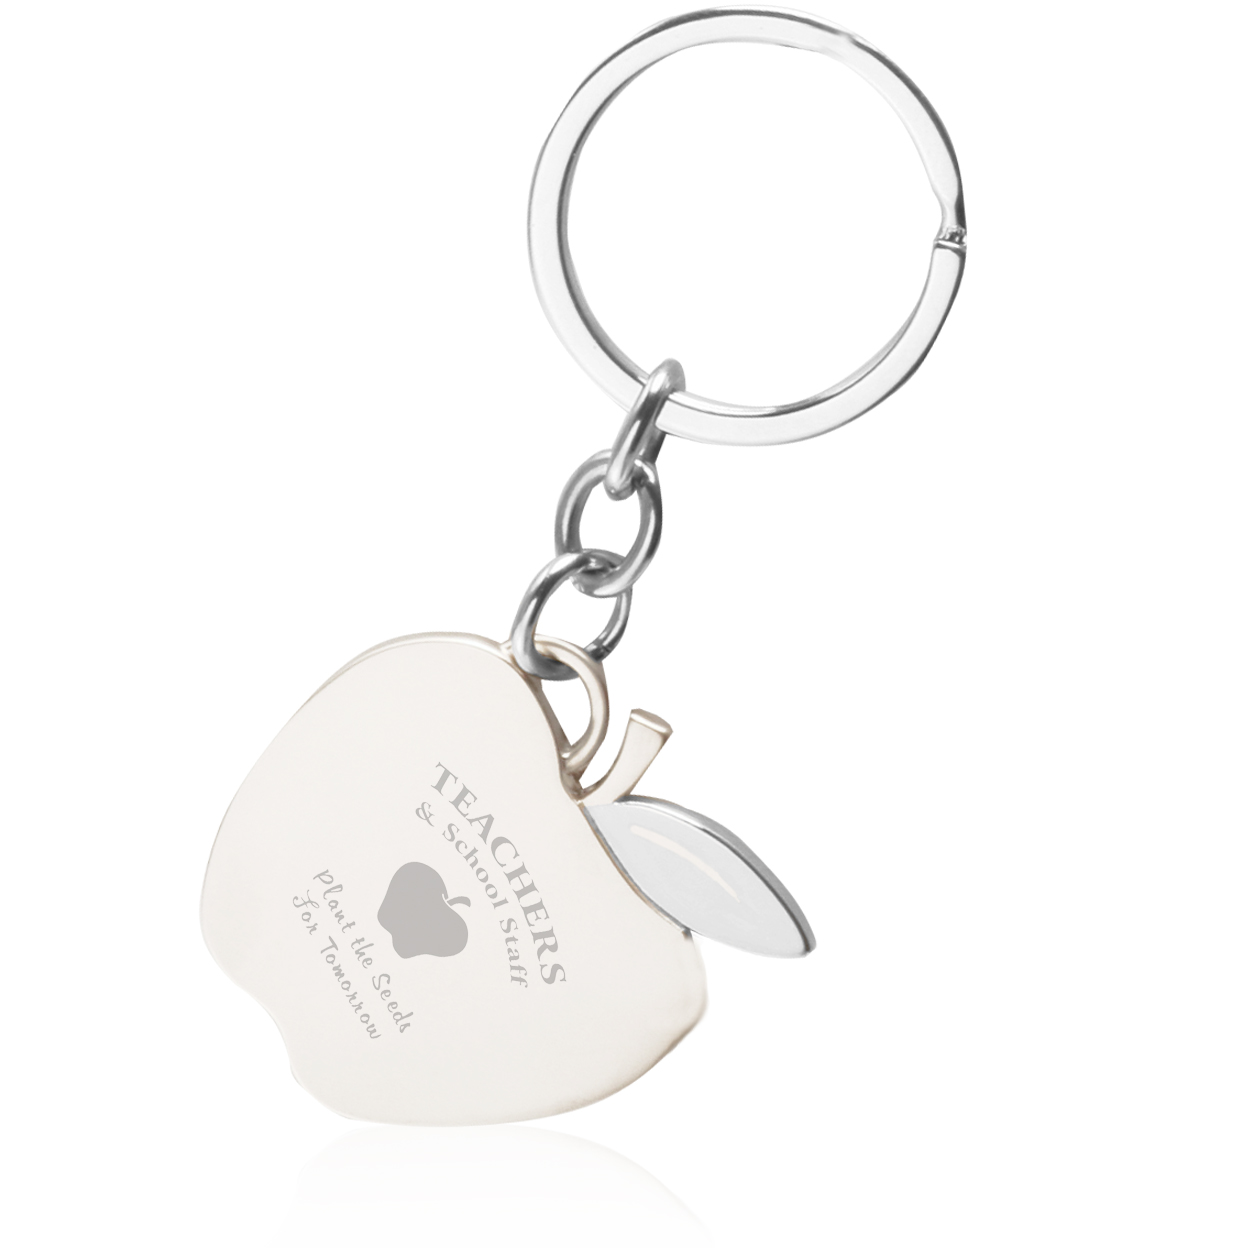 Key Chains Colouring Pages